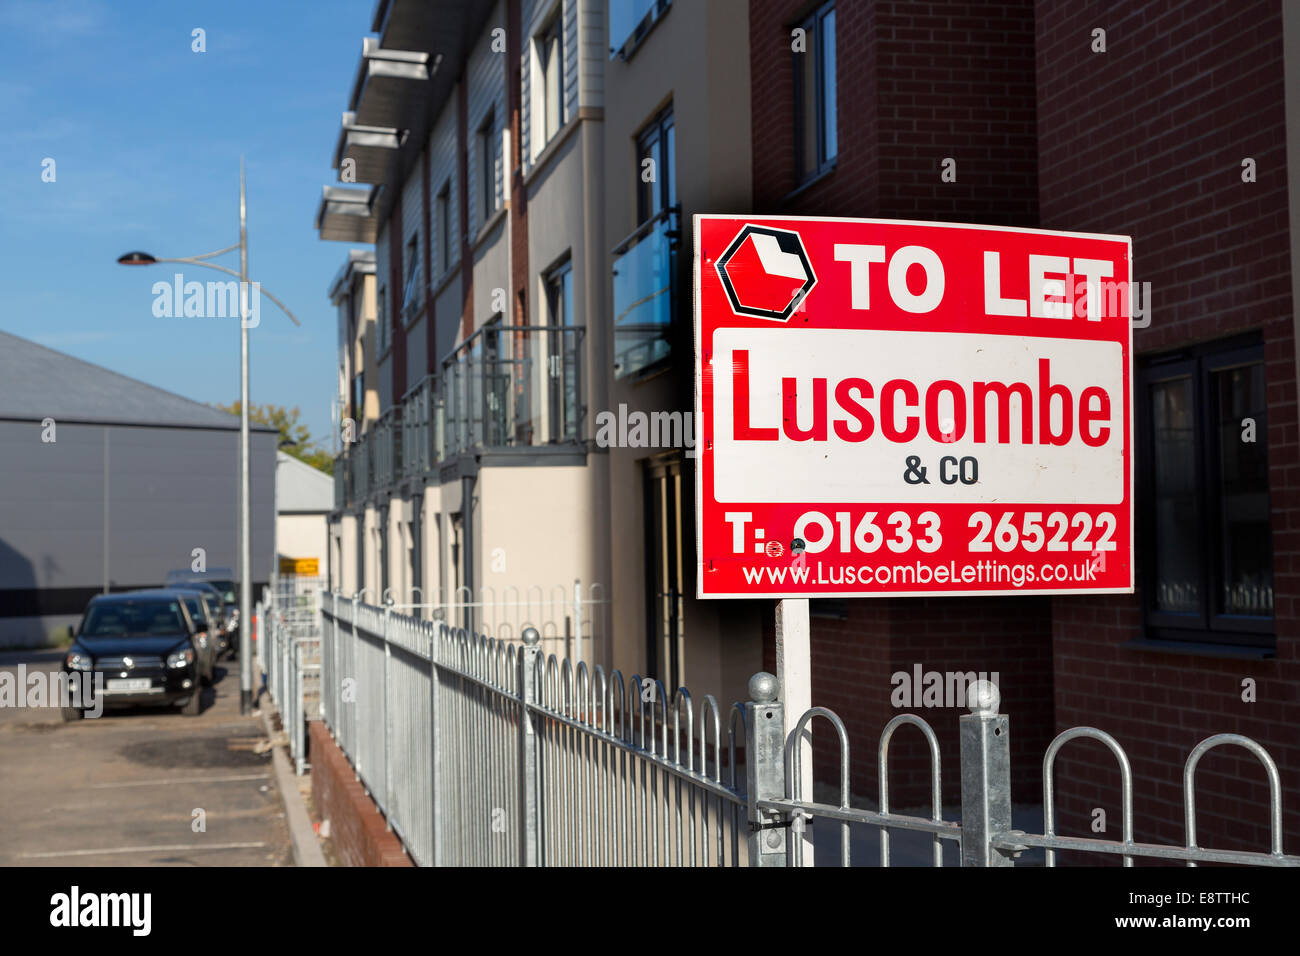 To let sign on new build houses, Newport, Wales, UK - Stock Image